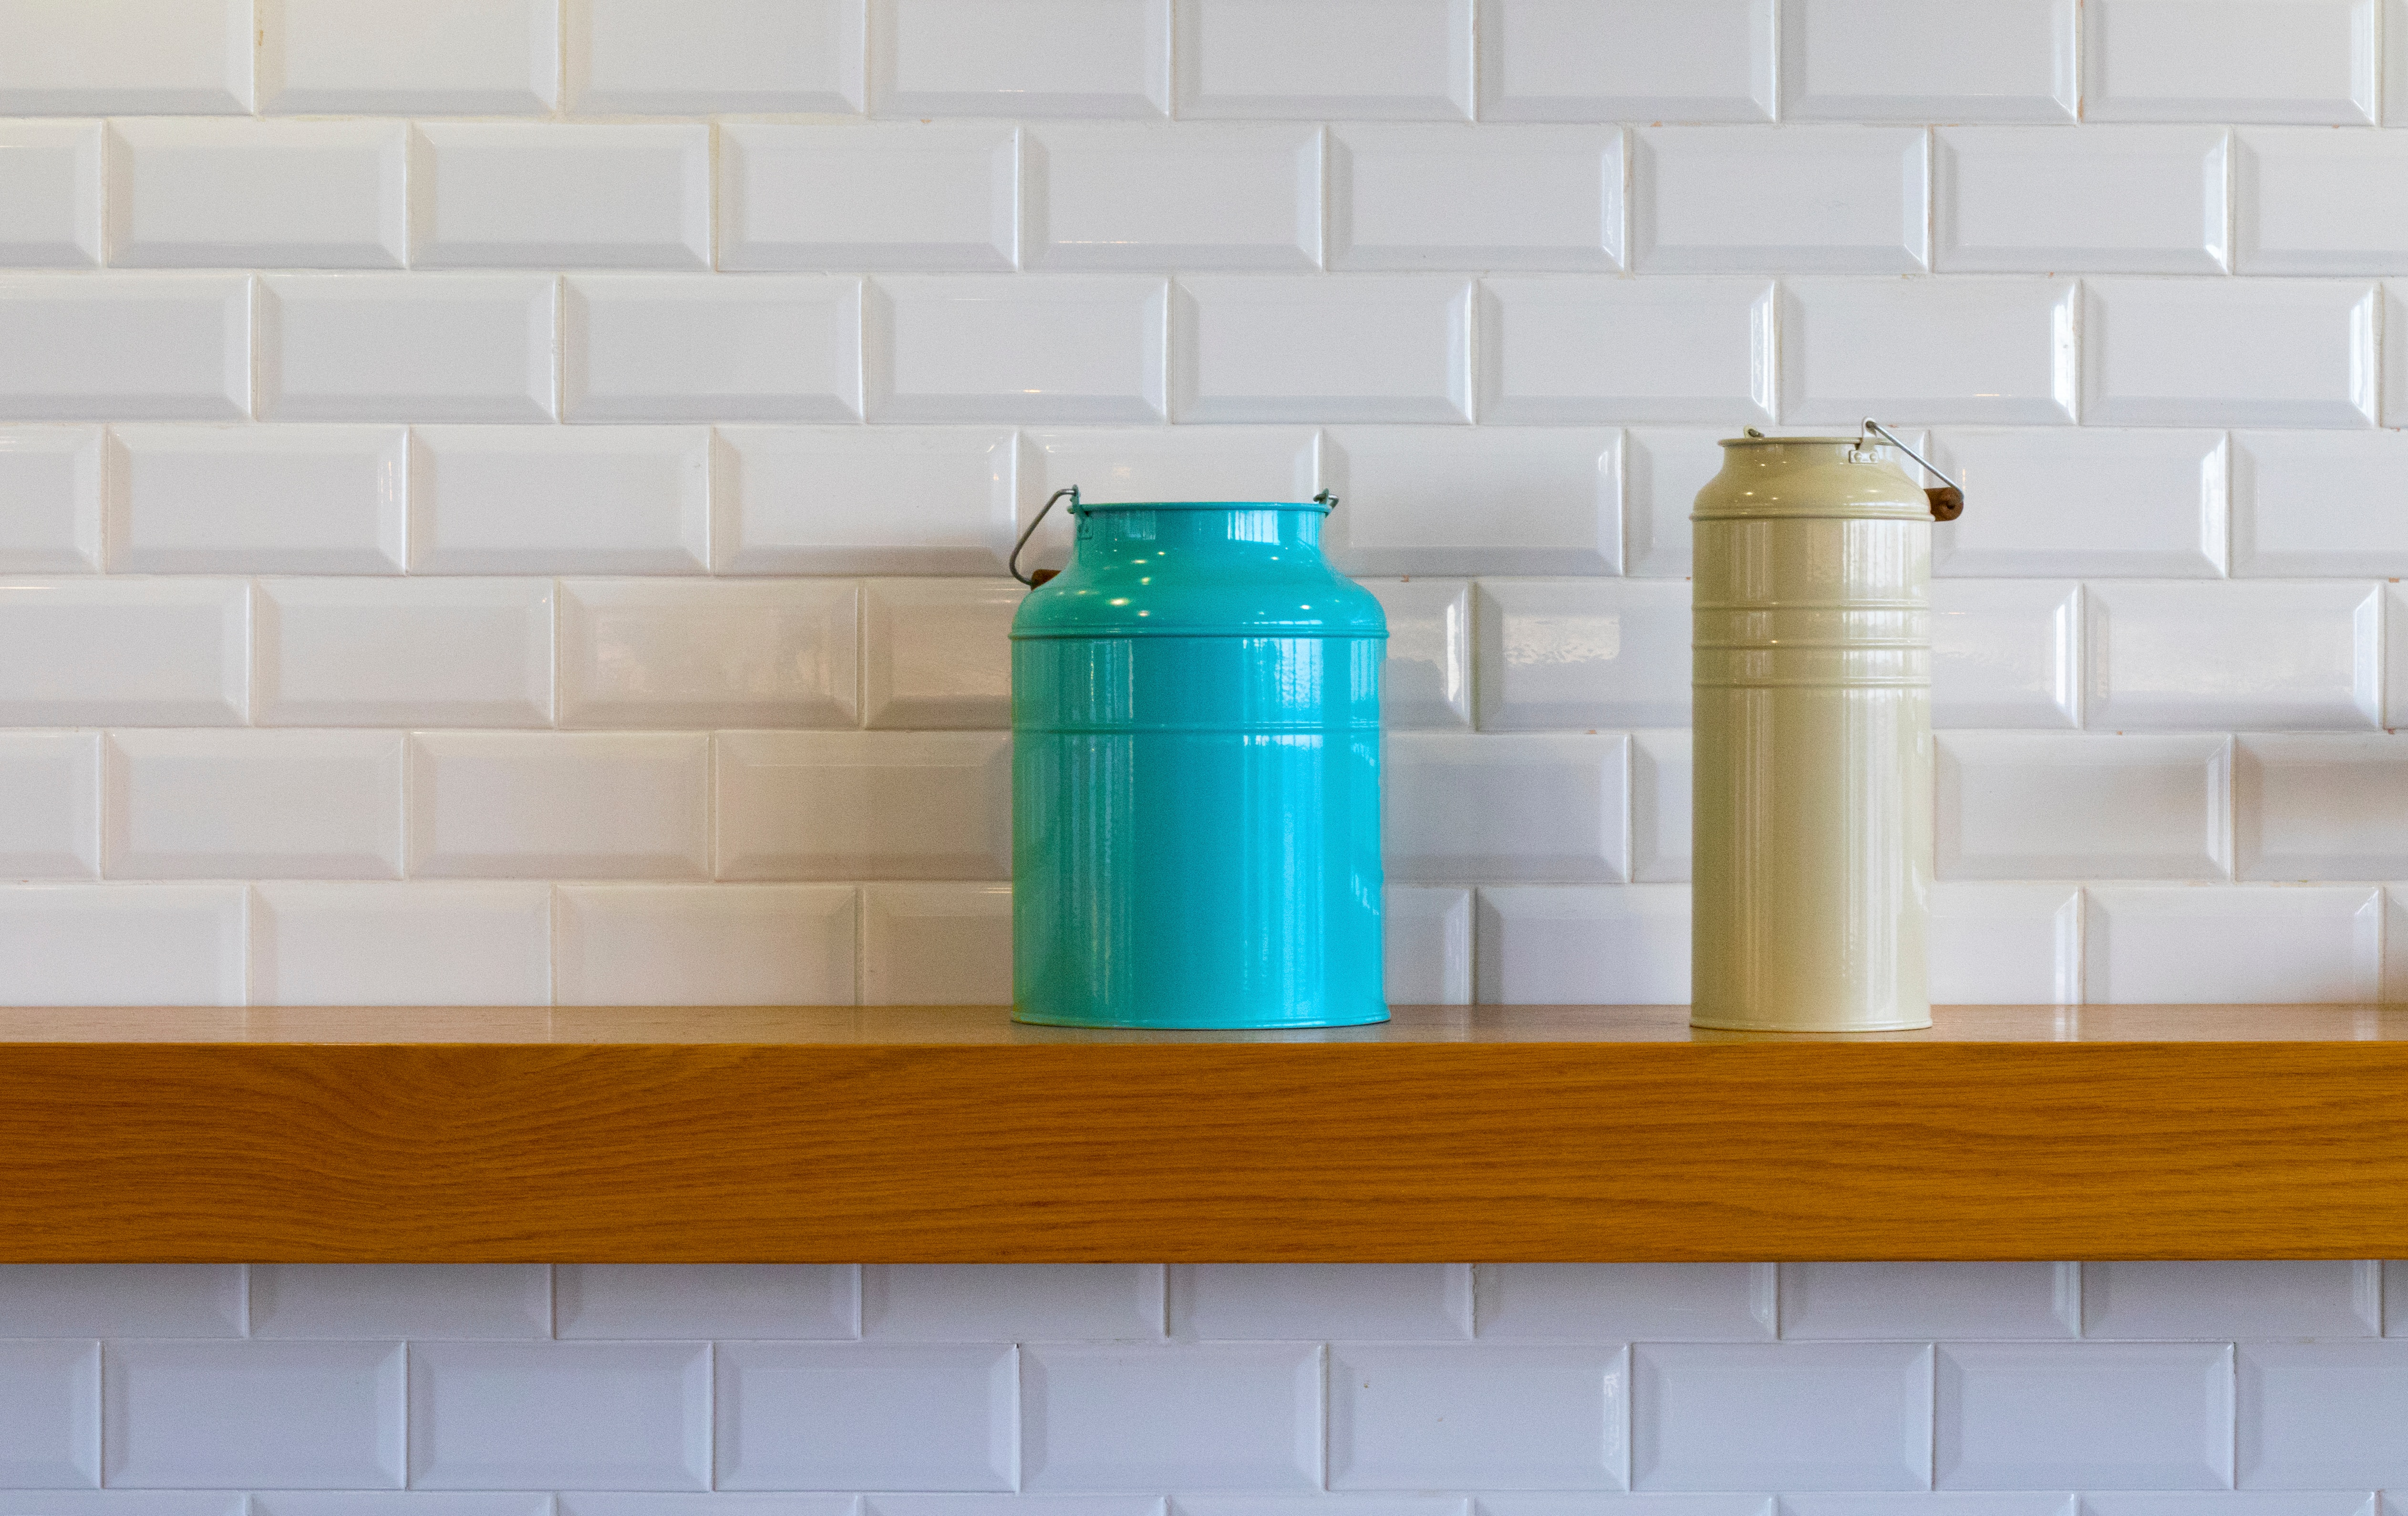 Two cans near a tiles